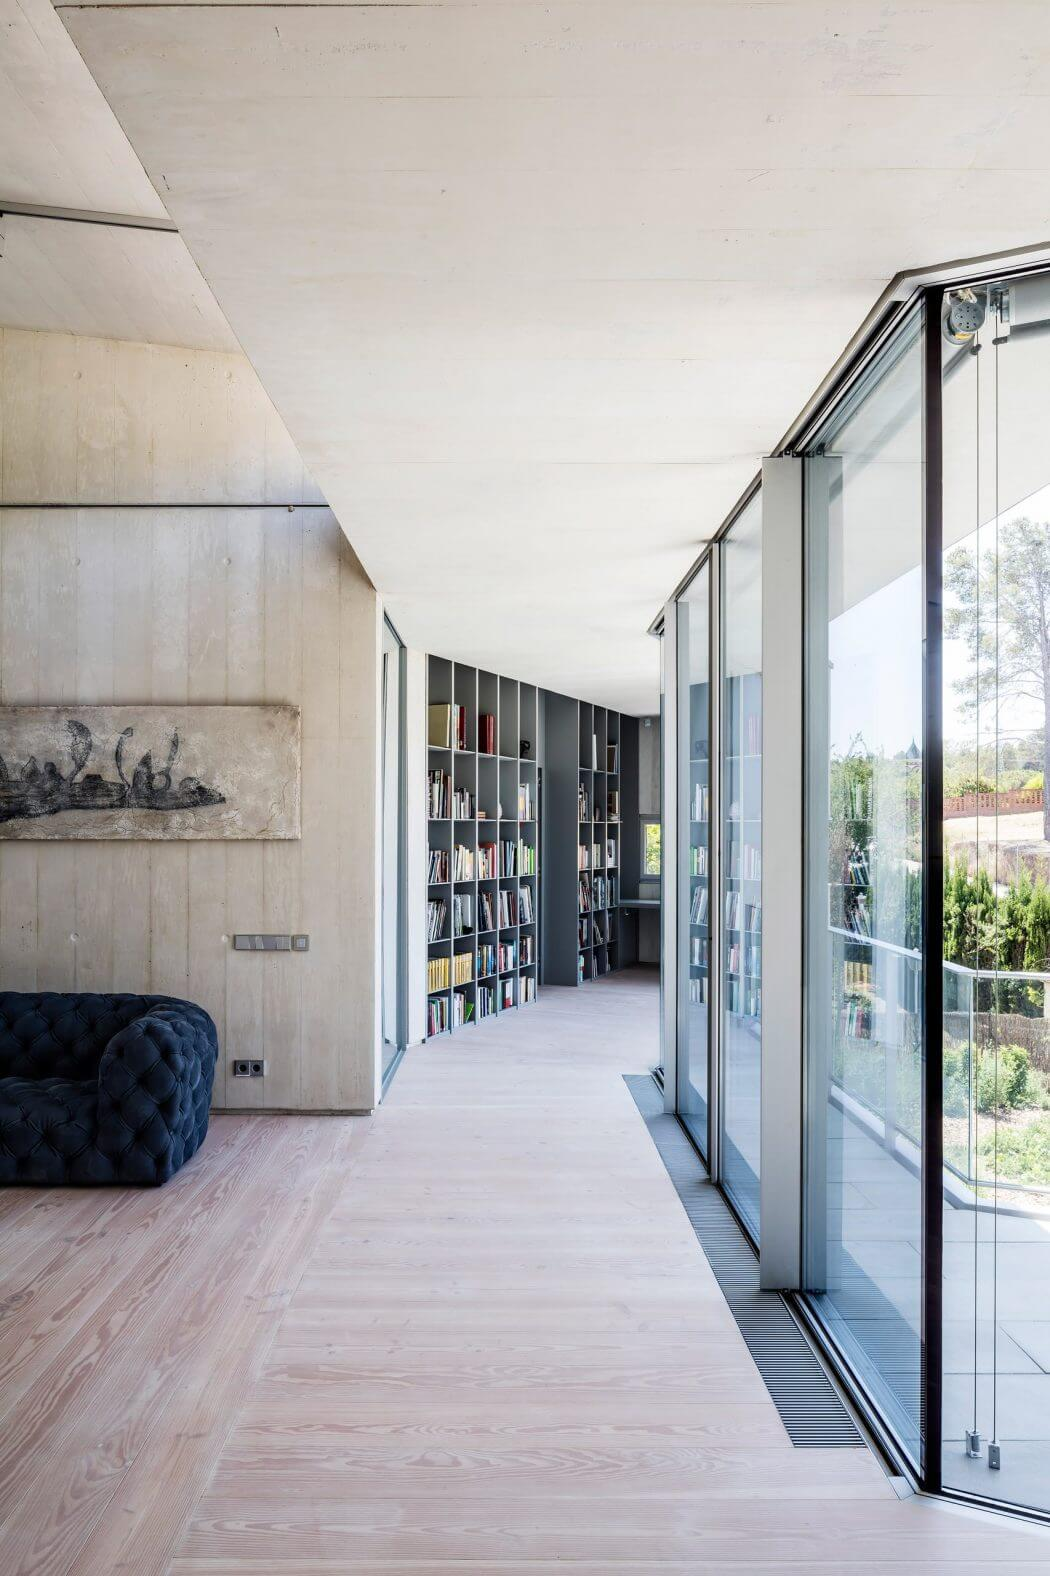 6. Contemporary Home in Barcelona by 05 AM Arquitectura - Contemporary Home in Barcelona by 05 AM Arquitectura